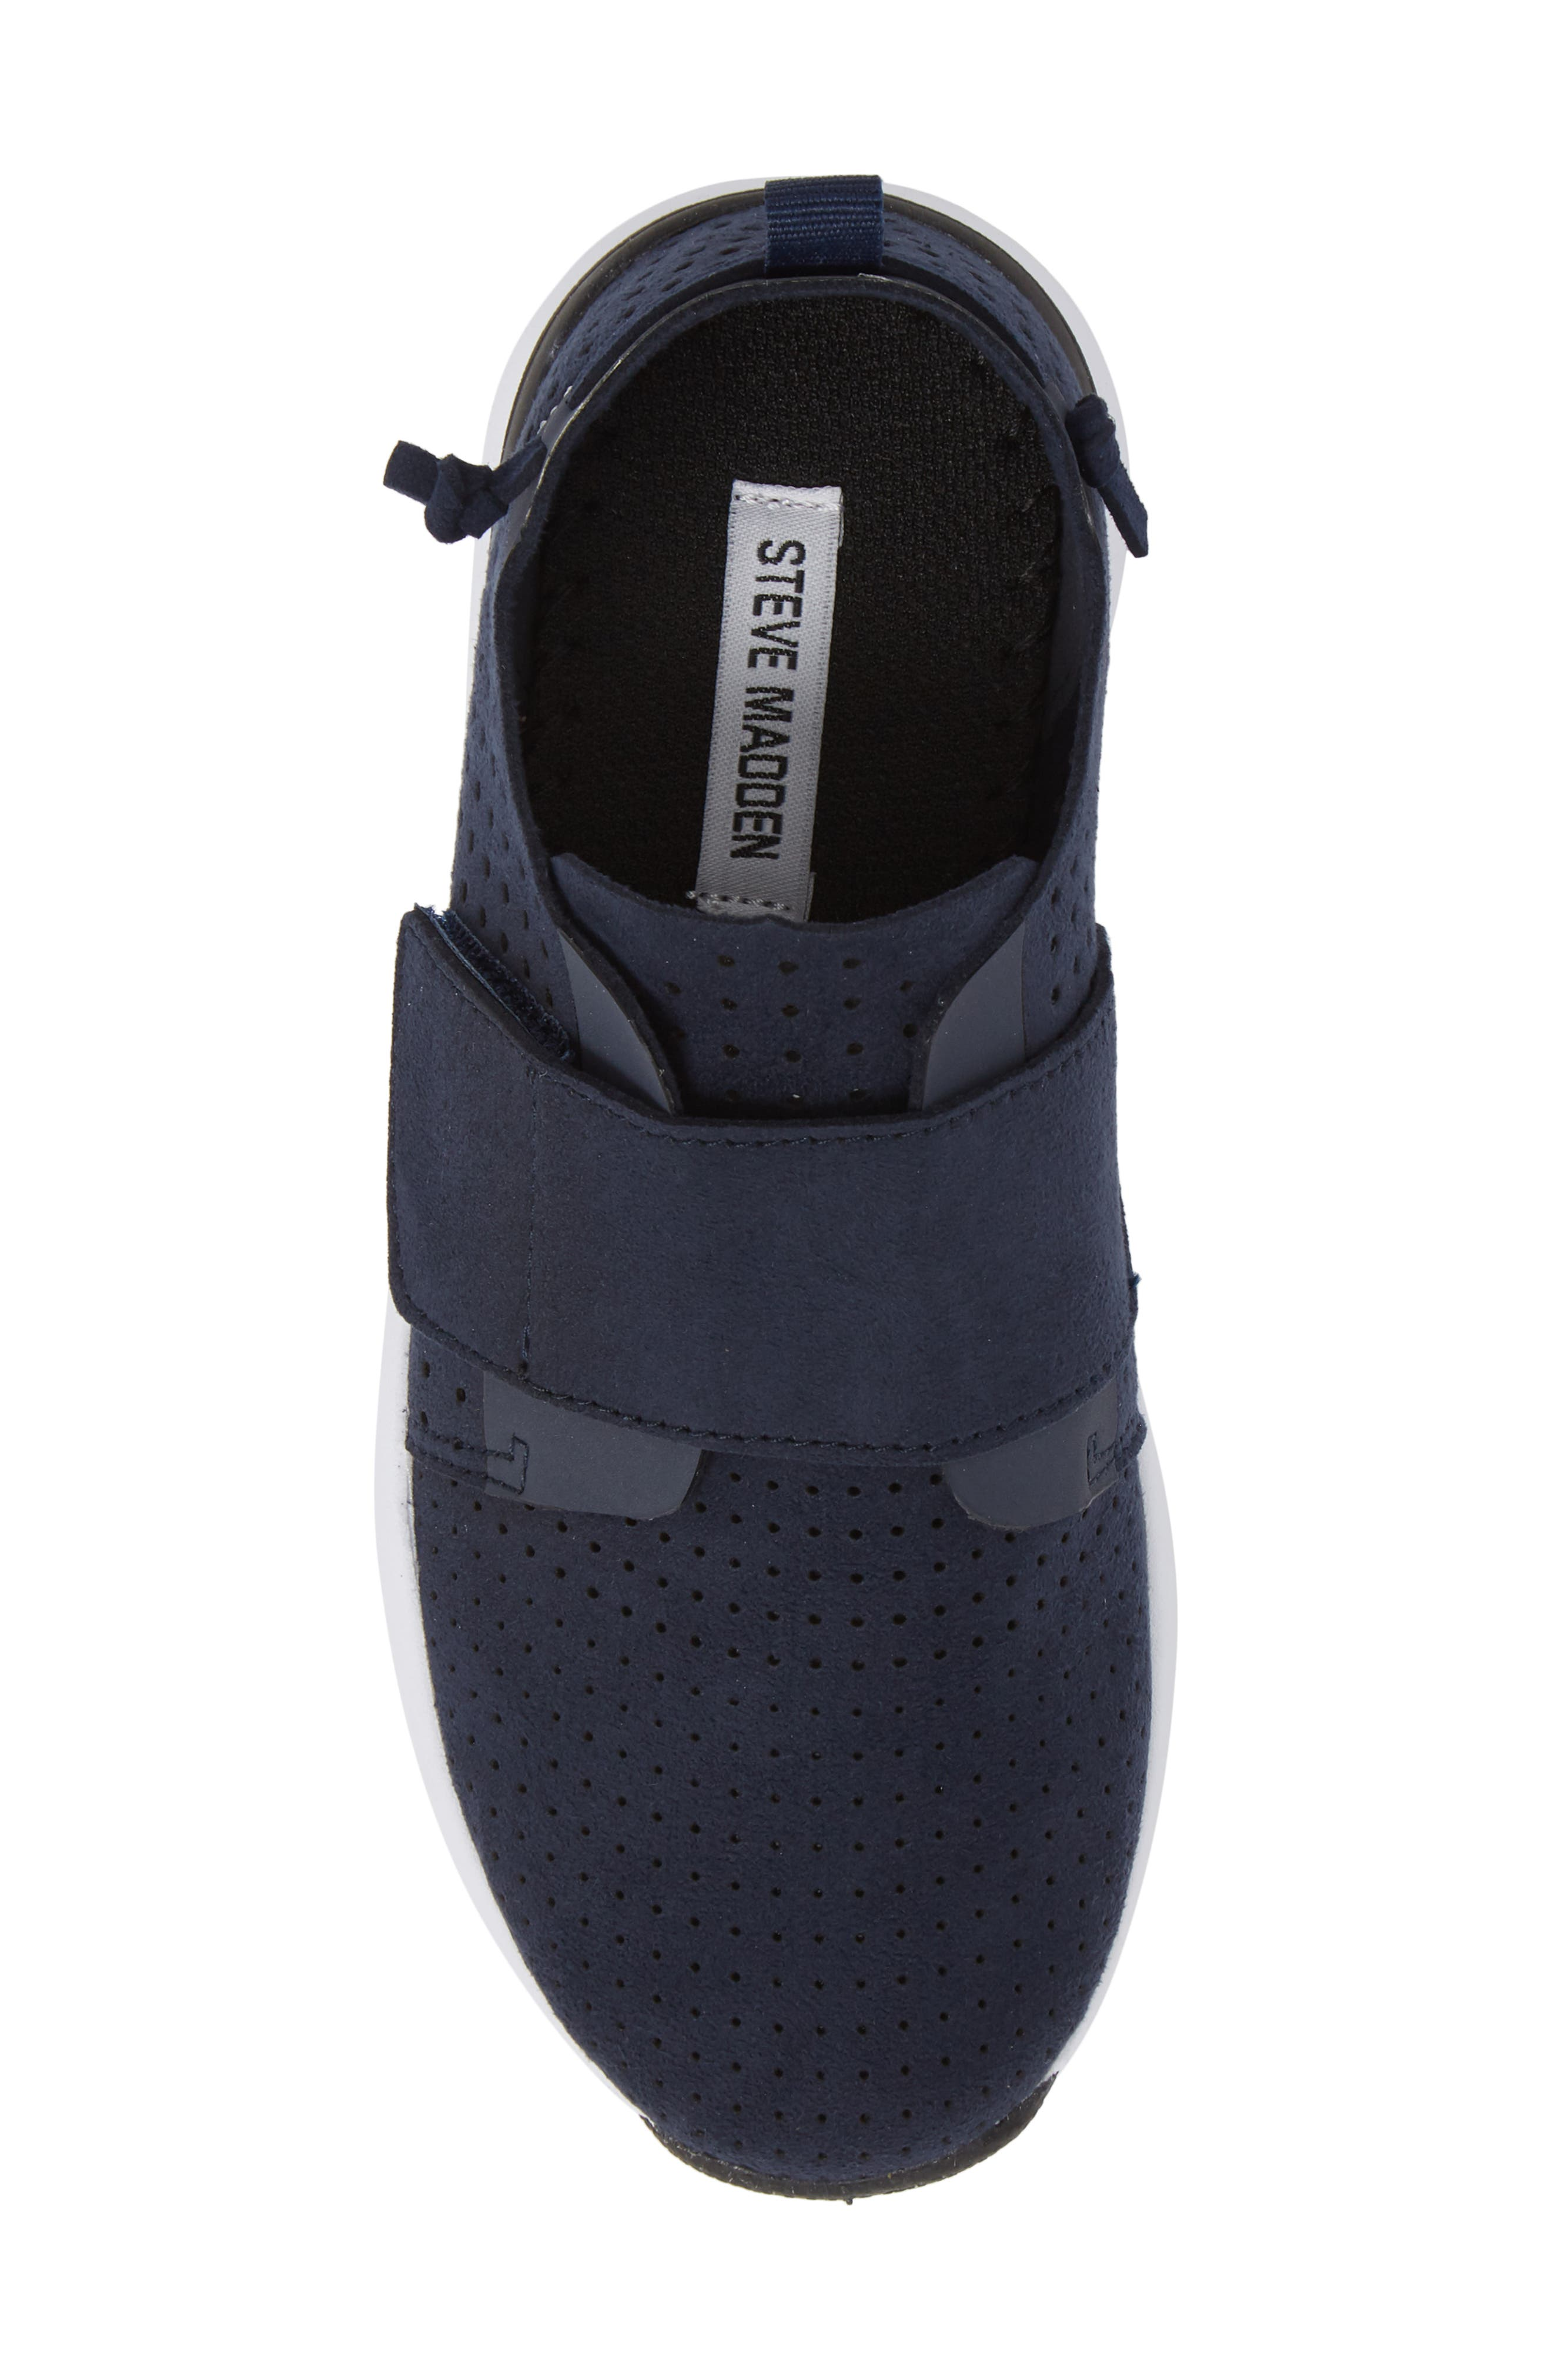 Brixxnv Perforated Sneaker,                             Alternate thumbnail 5, color,                             NAVY